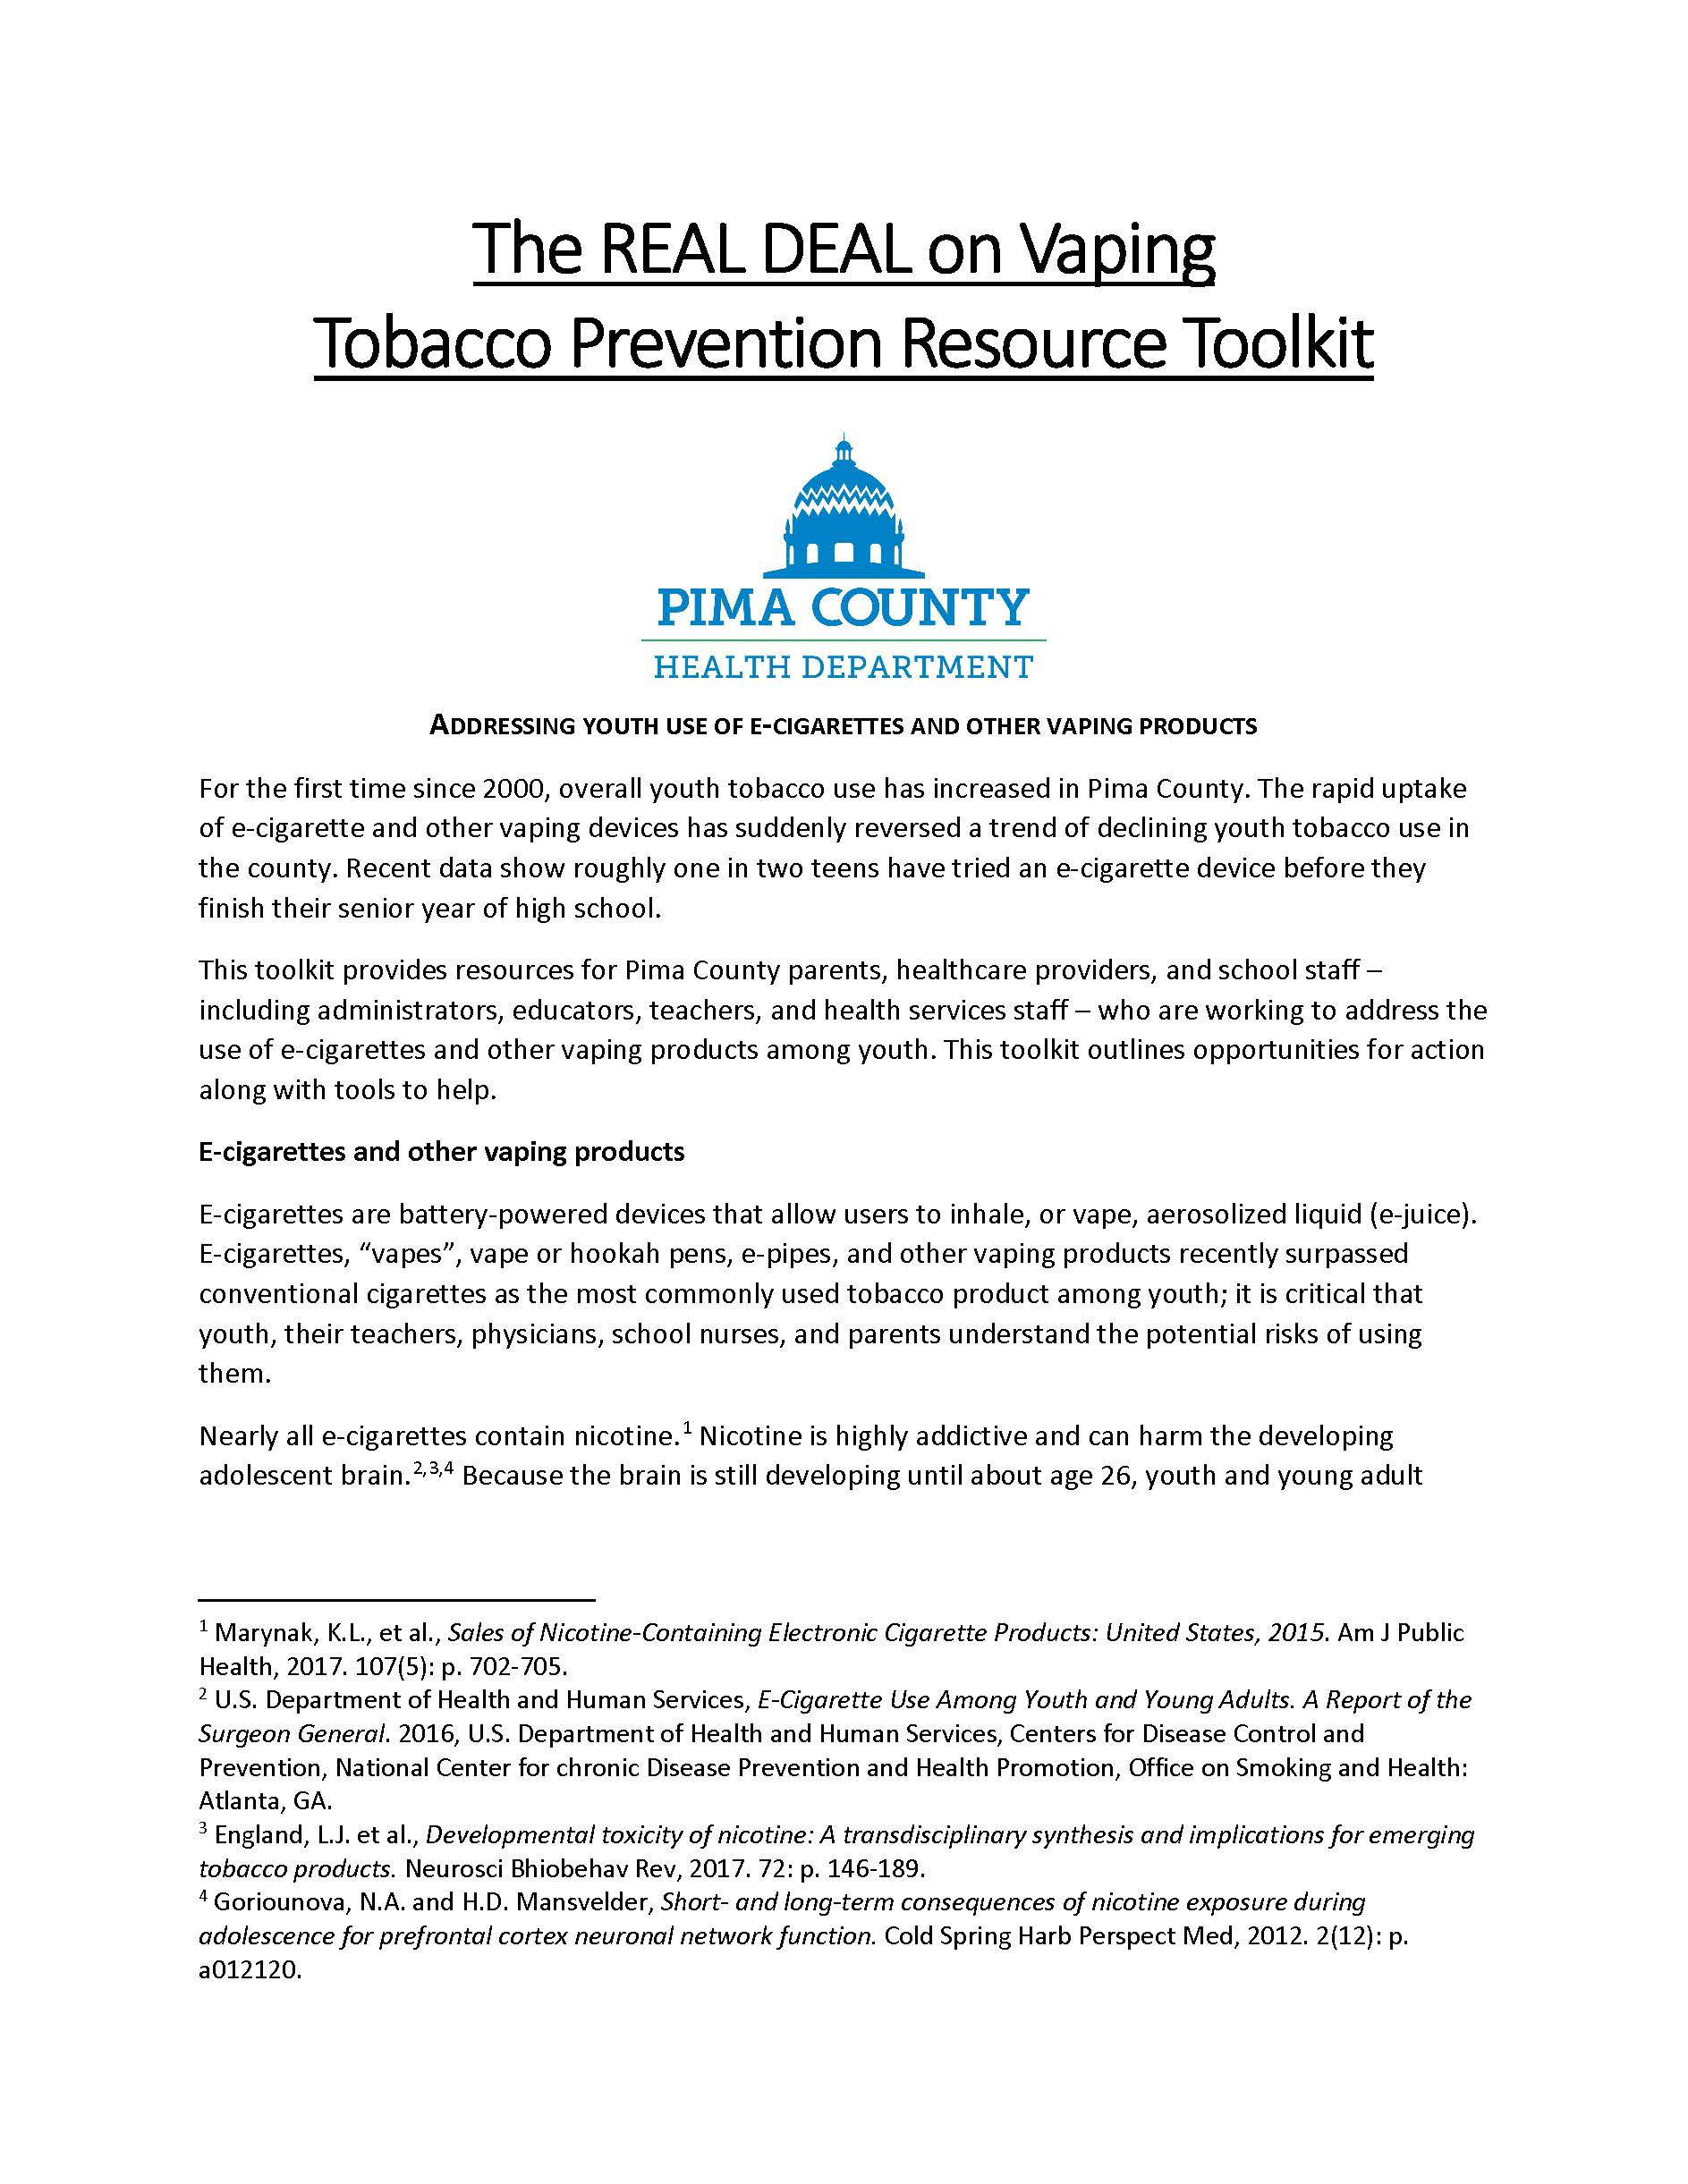 resource toolkit for the real deal on vaping